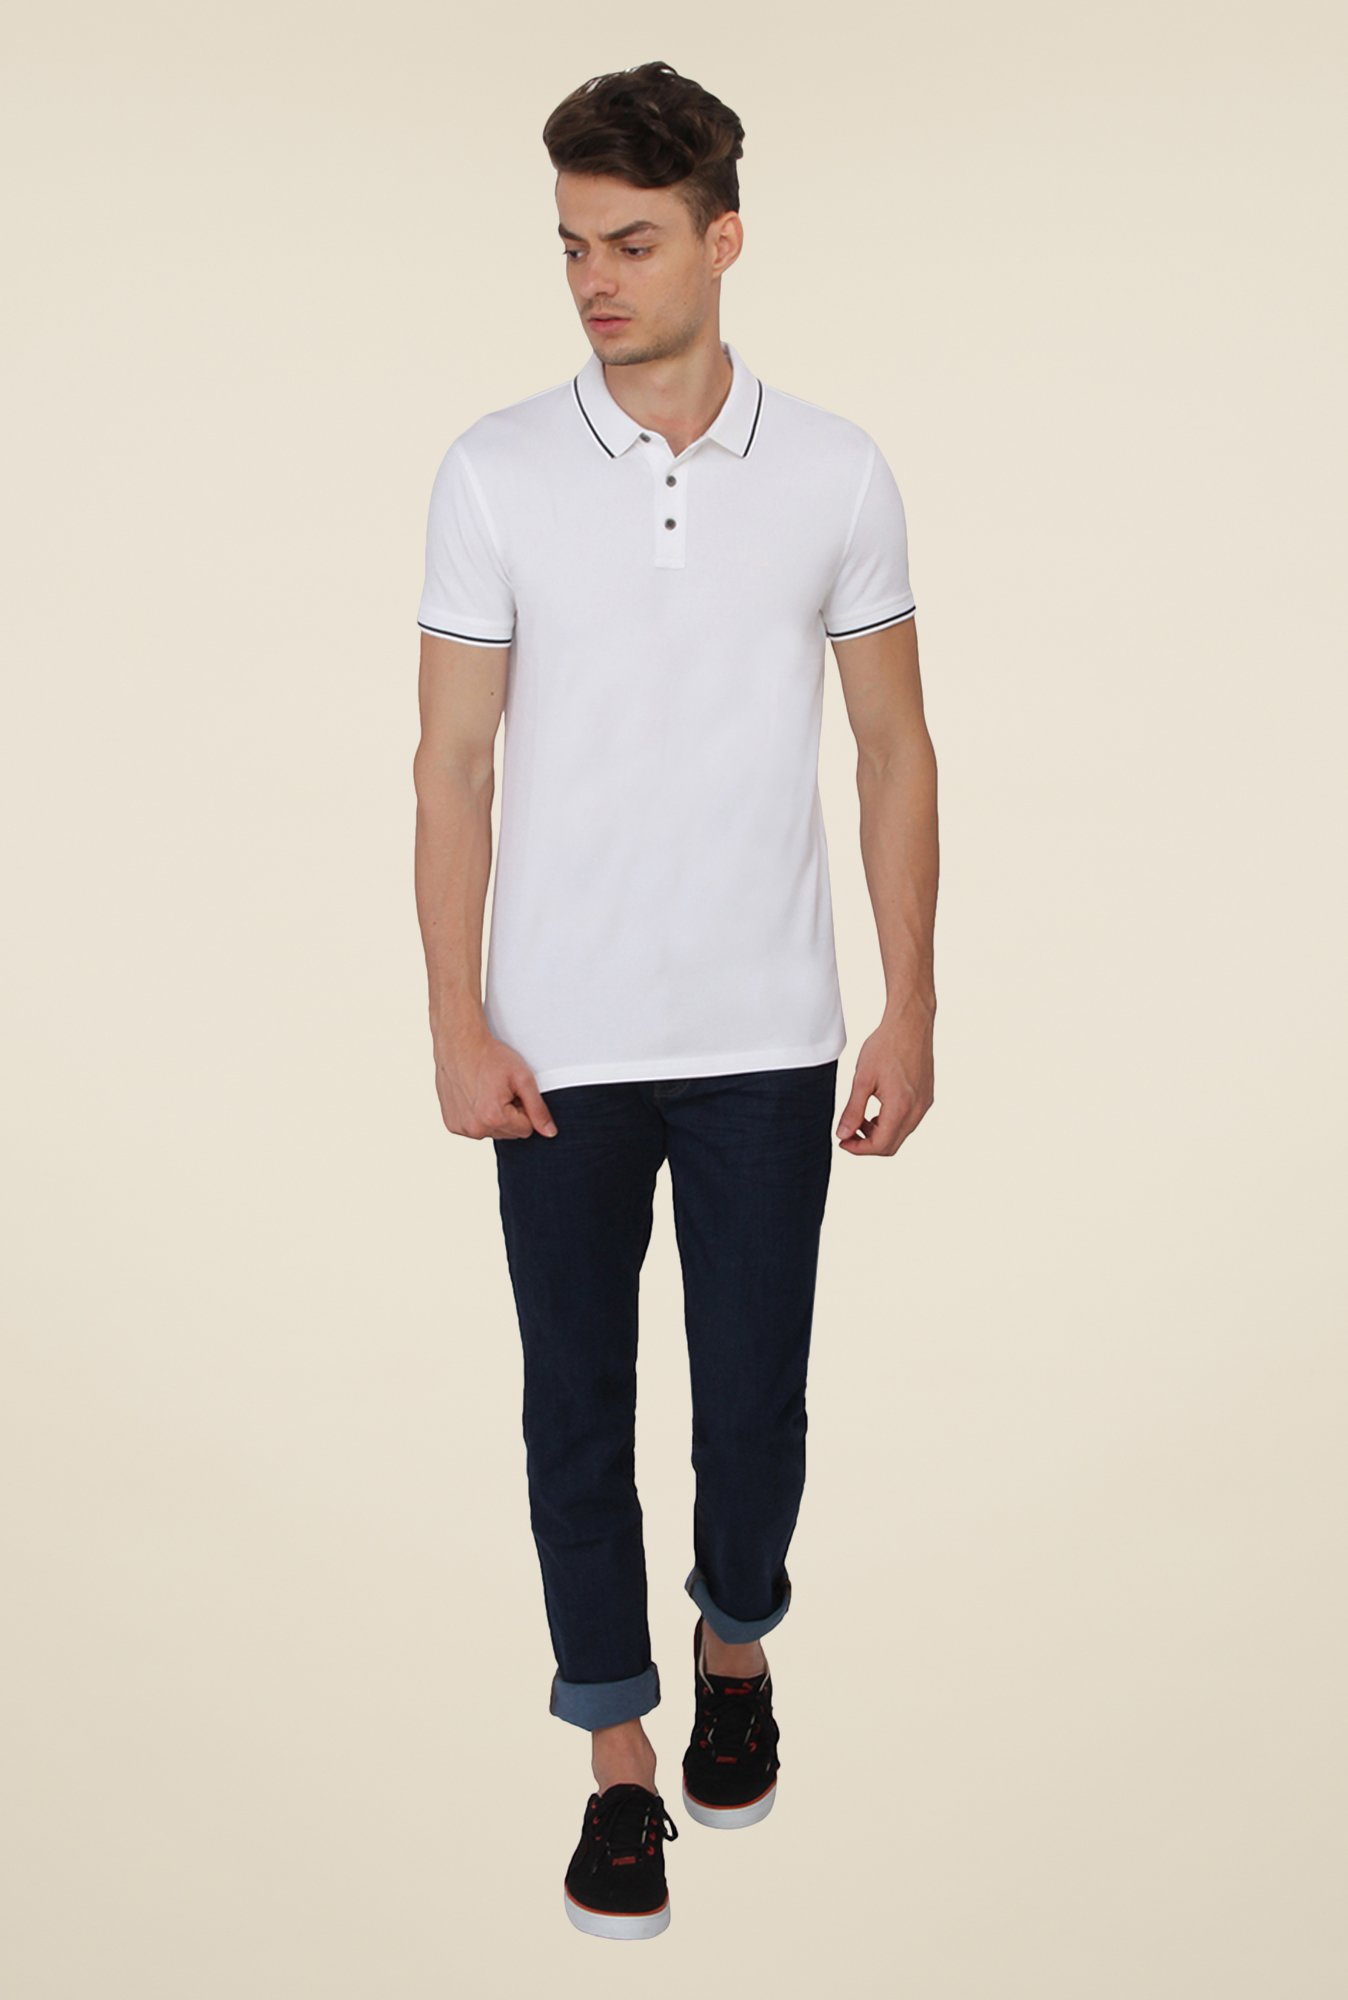 Calvin Klein White Solid Polo T-Shirt